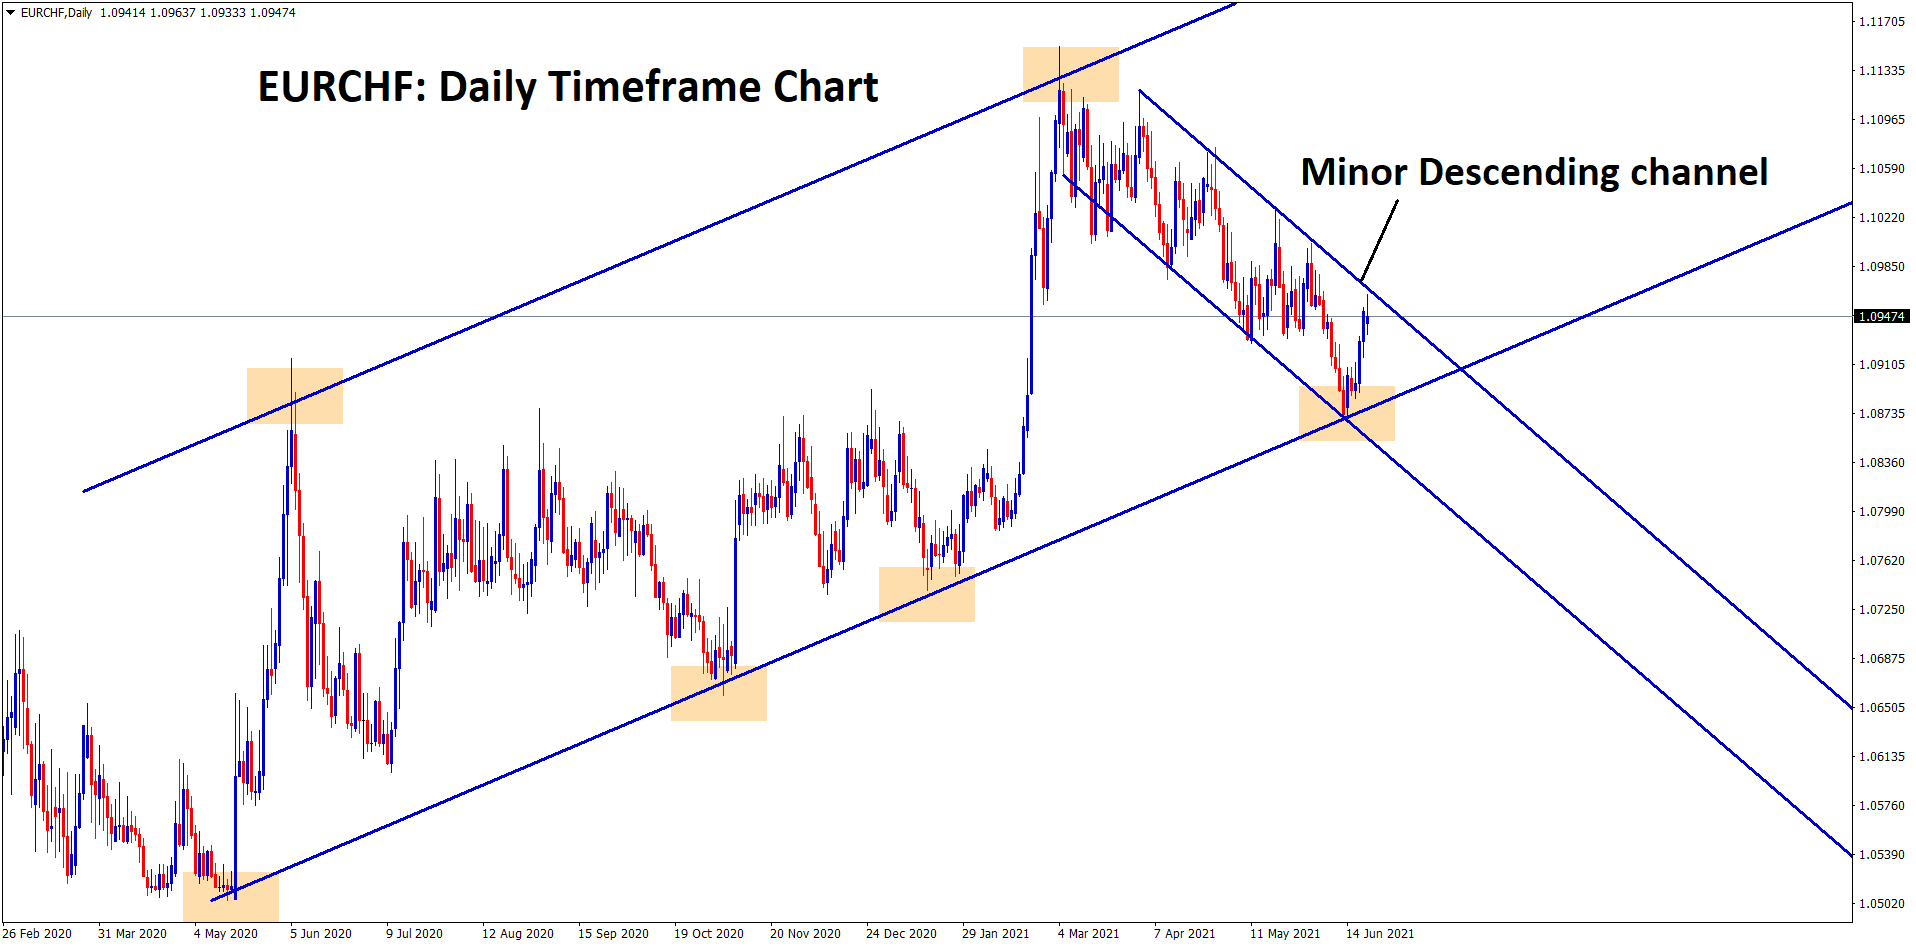 EURCHF moving in an uptrend for a long time Now market moving inbetween the minor descending channel. wait for the breakout at the top to Buy EURCHF for long term